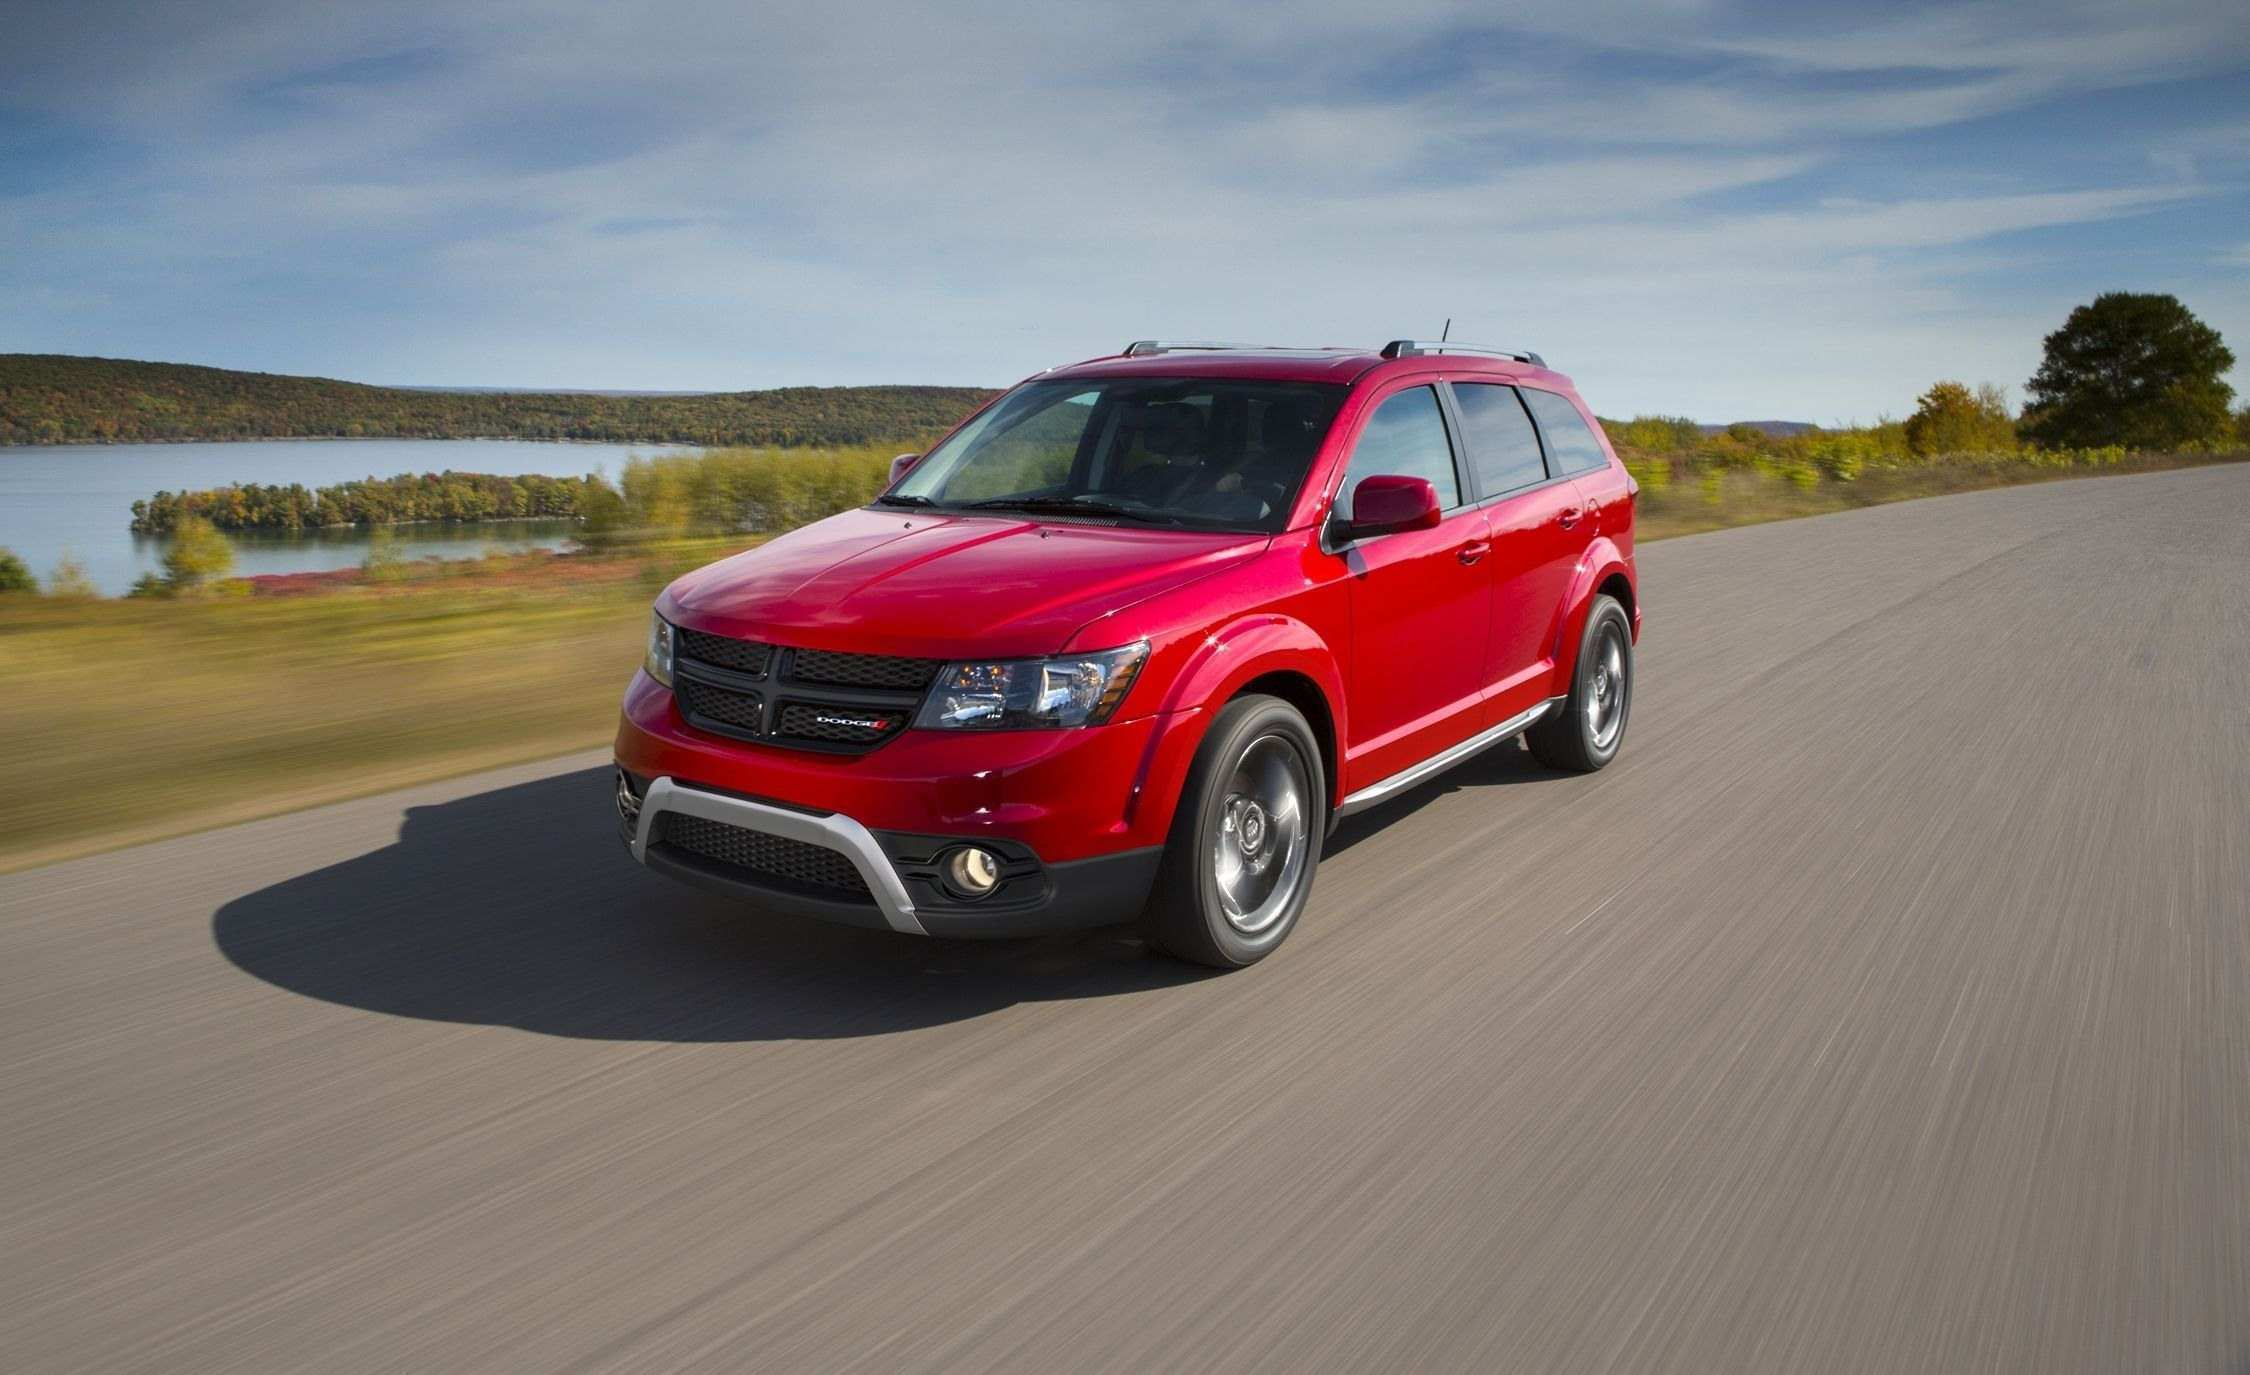 42 All New 2020 Dodge Journey Srt Engine